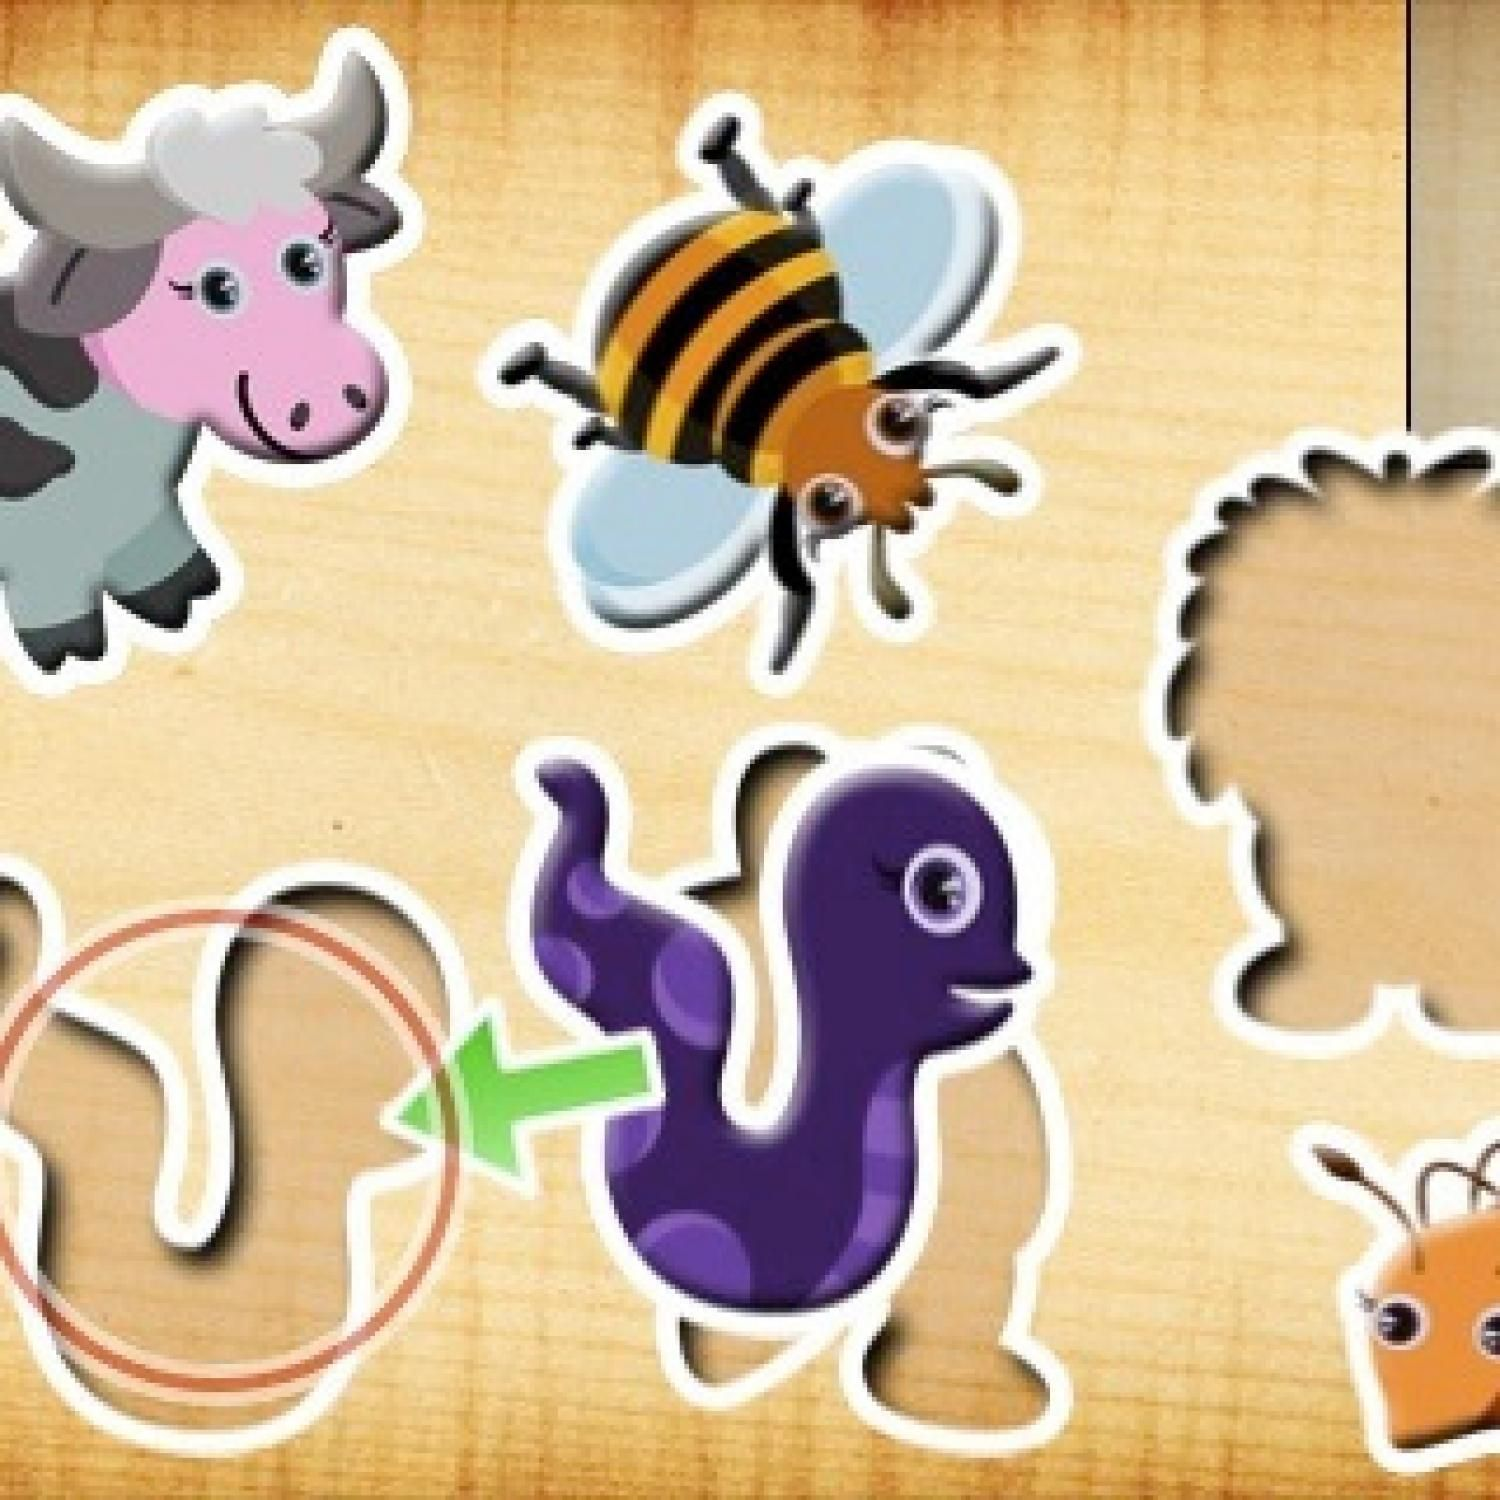 Educational iphone and ipad games for little kids